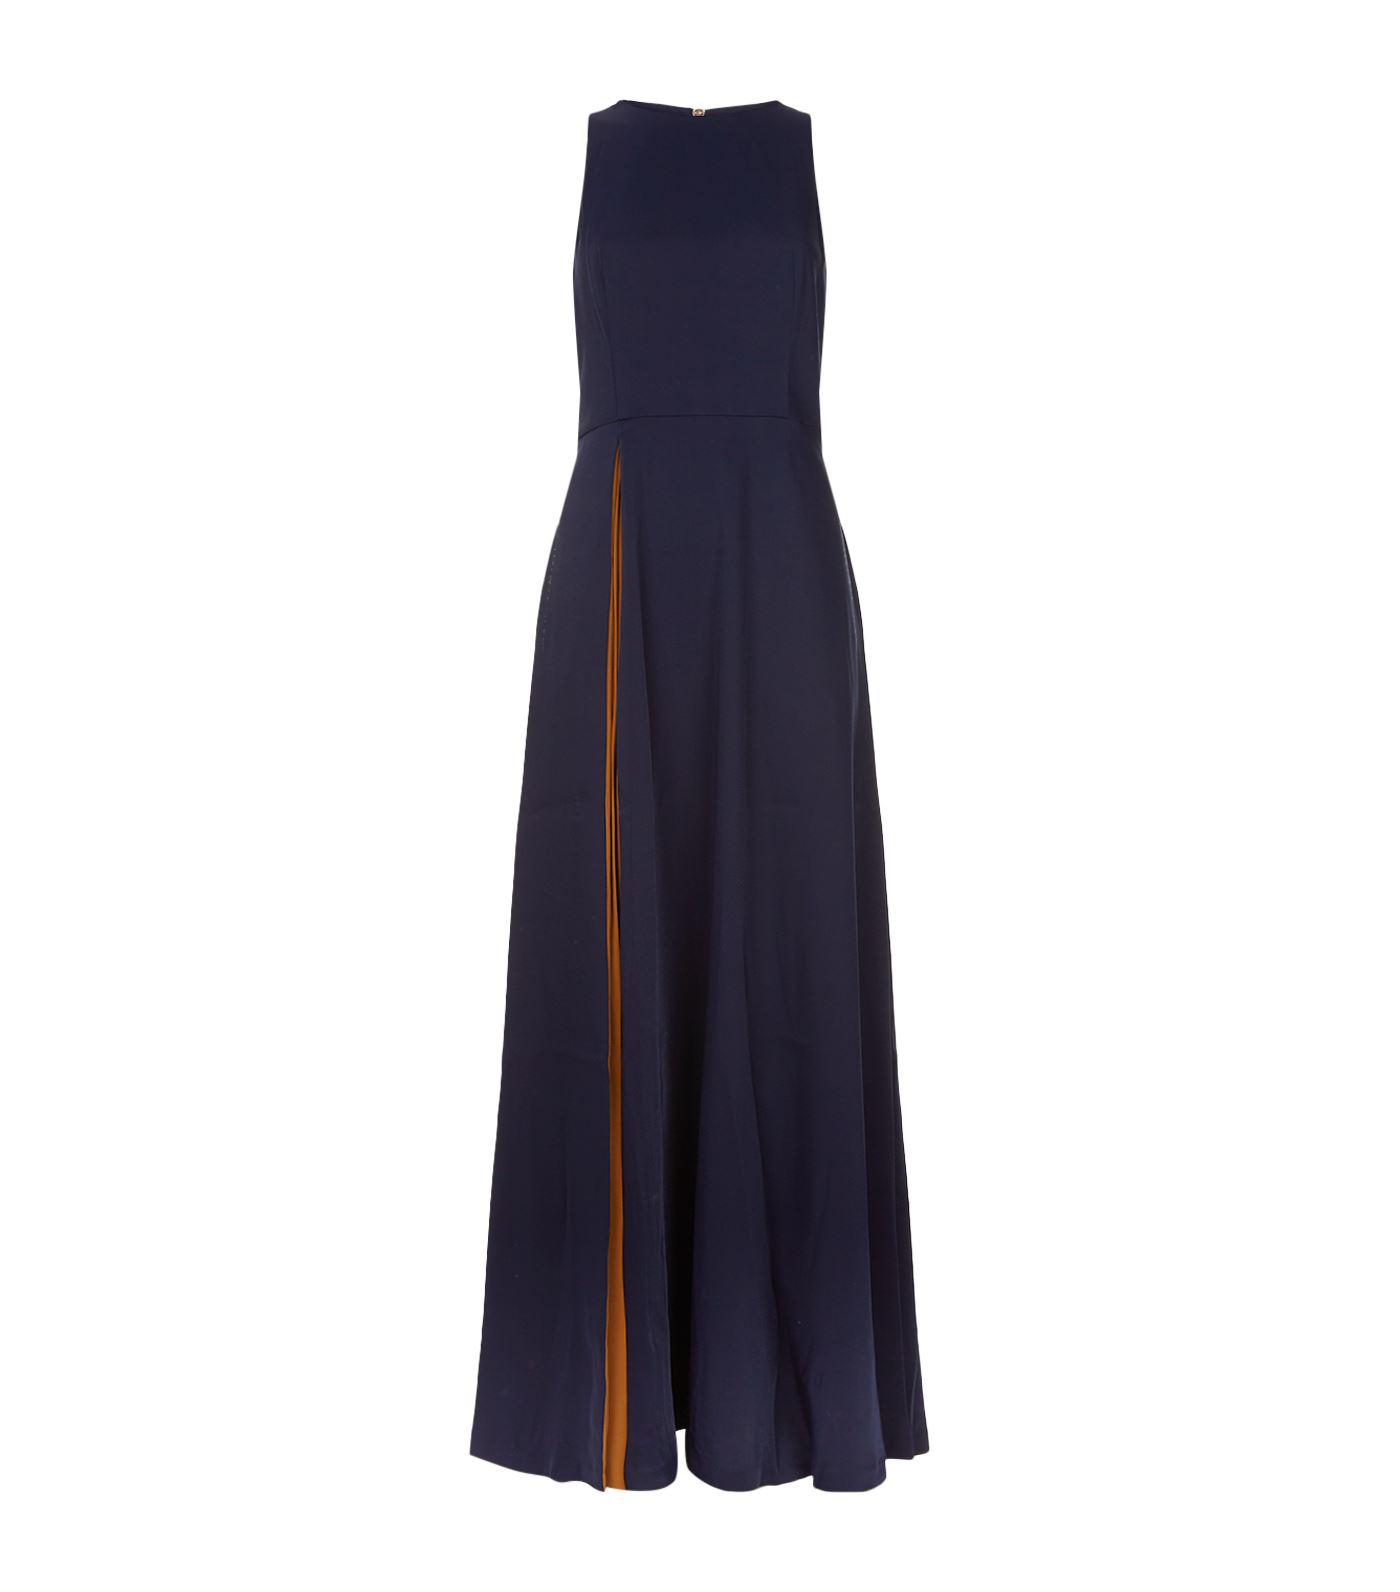 ff9a12b214cfd4 Lyst - Ted Baker Madizon Contrast Pleat Maxi Dress in Blue